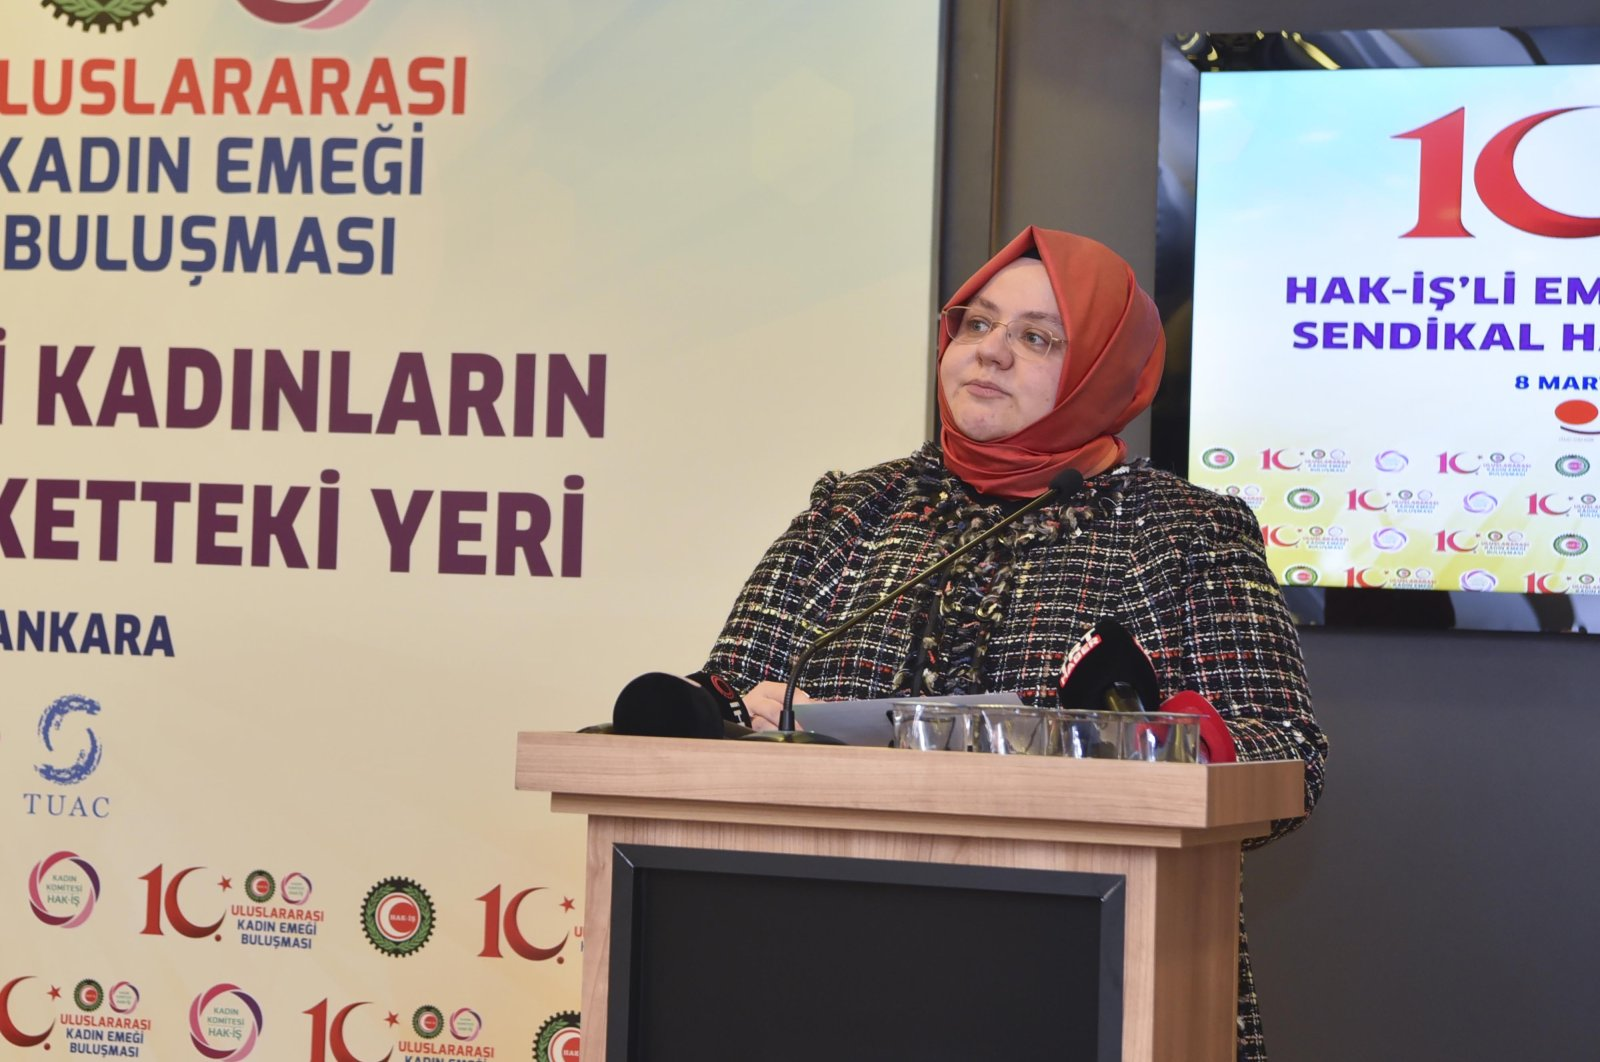 Turkey's Family, Labor and Social Services Minister Zehra Zümrüt Selçuk talks at the 10th International Women's Labor Meeting, organized by the HAK Worker Unions Confederation (HAK-IŞ), in Ankara, Turkey, March 8, 2021. (DHA)